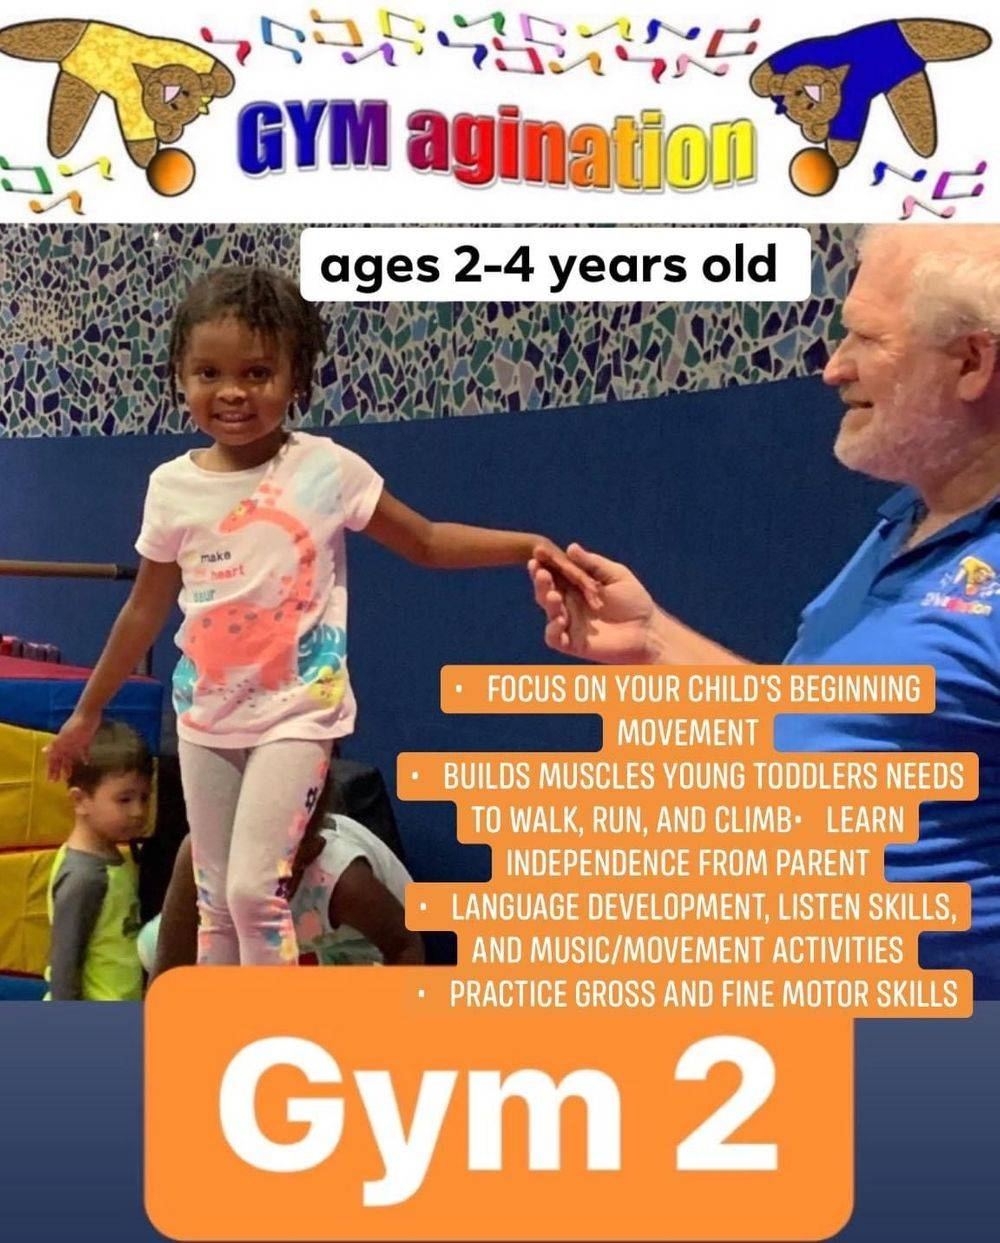 Gym 2 ages 2-4  year olds